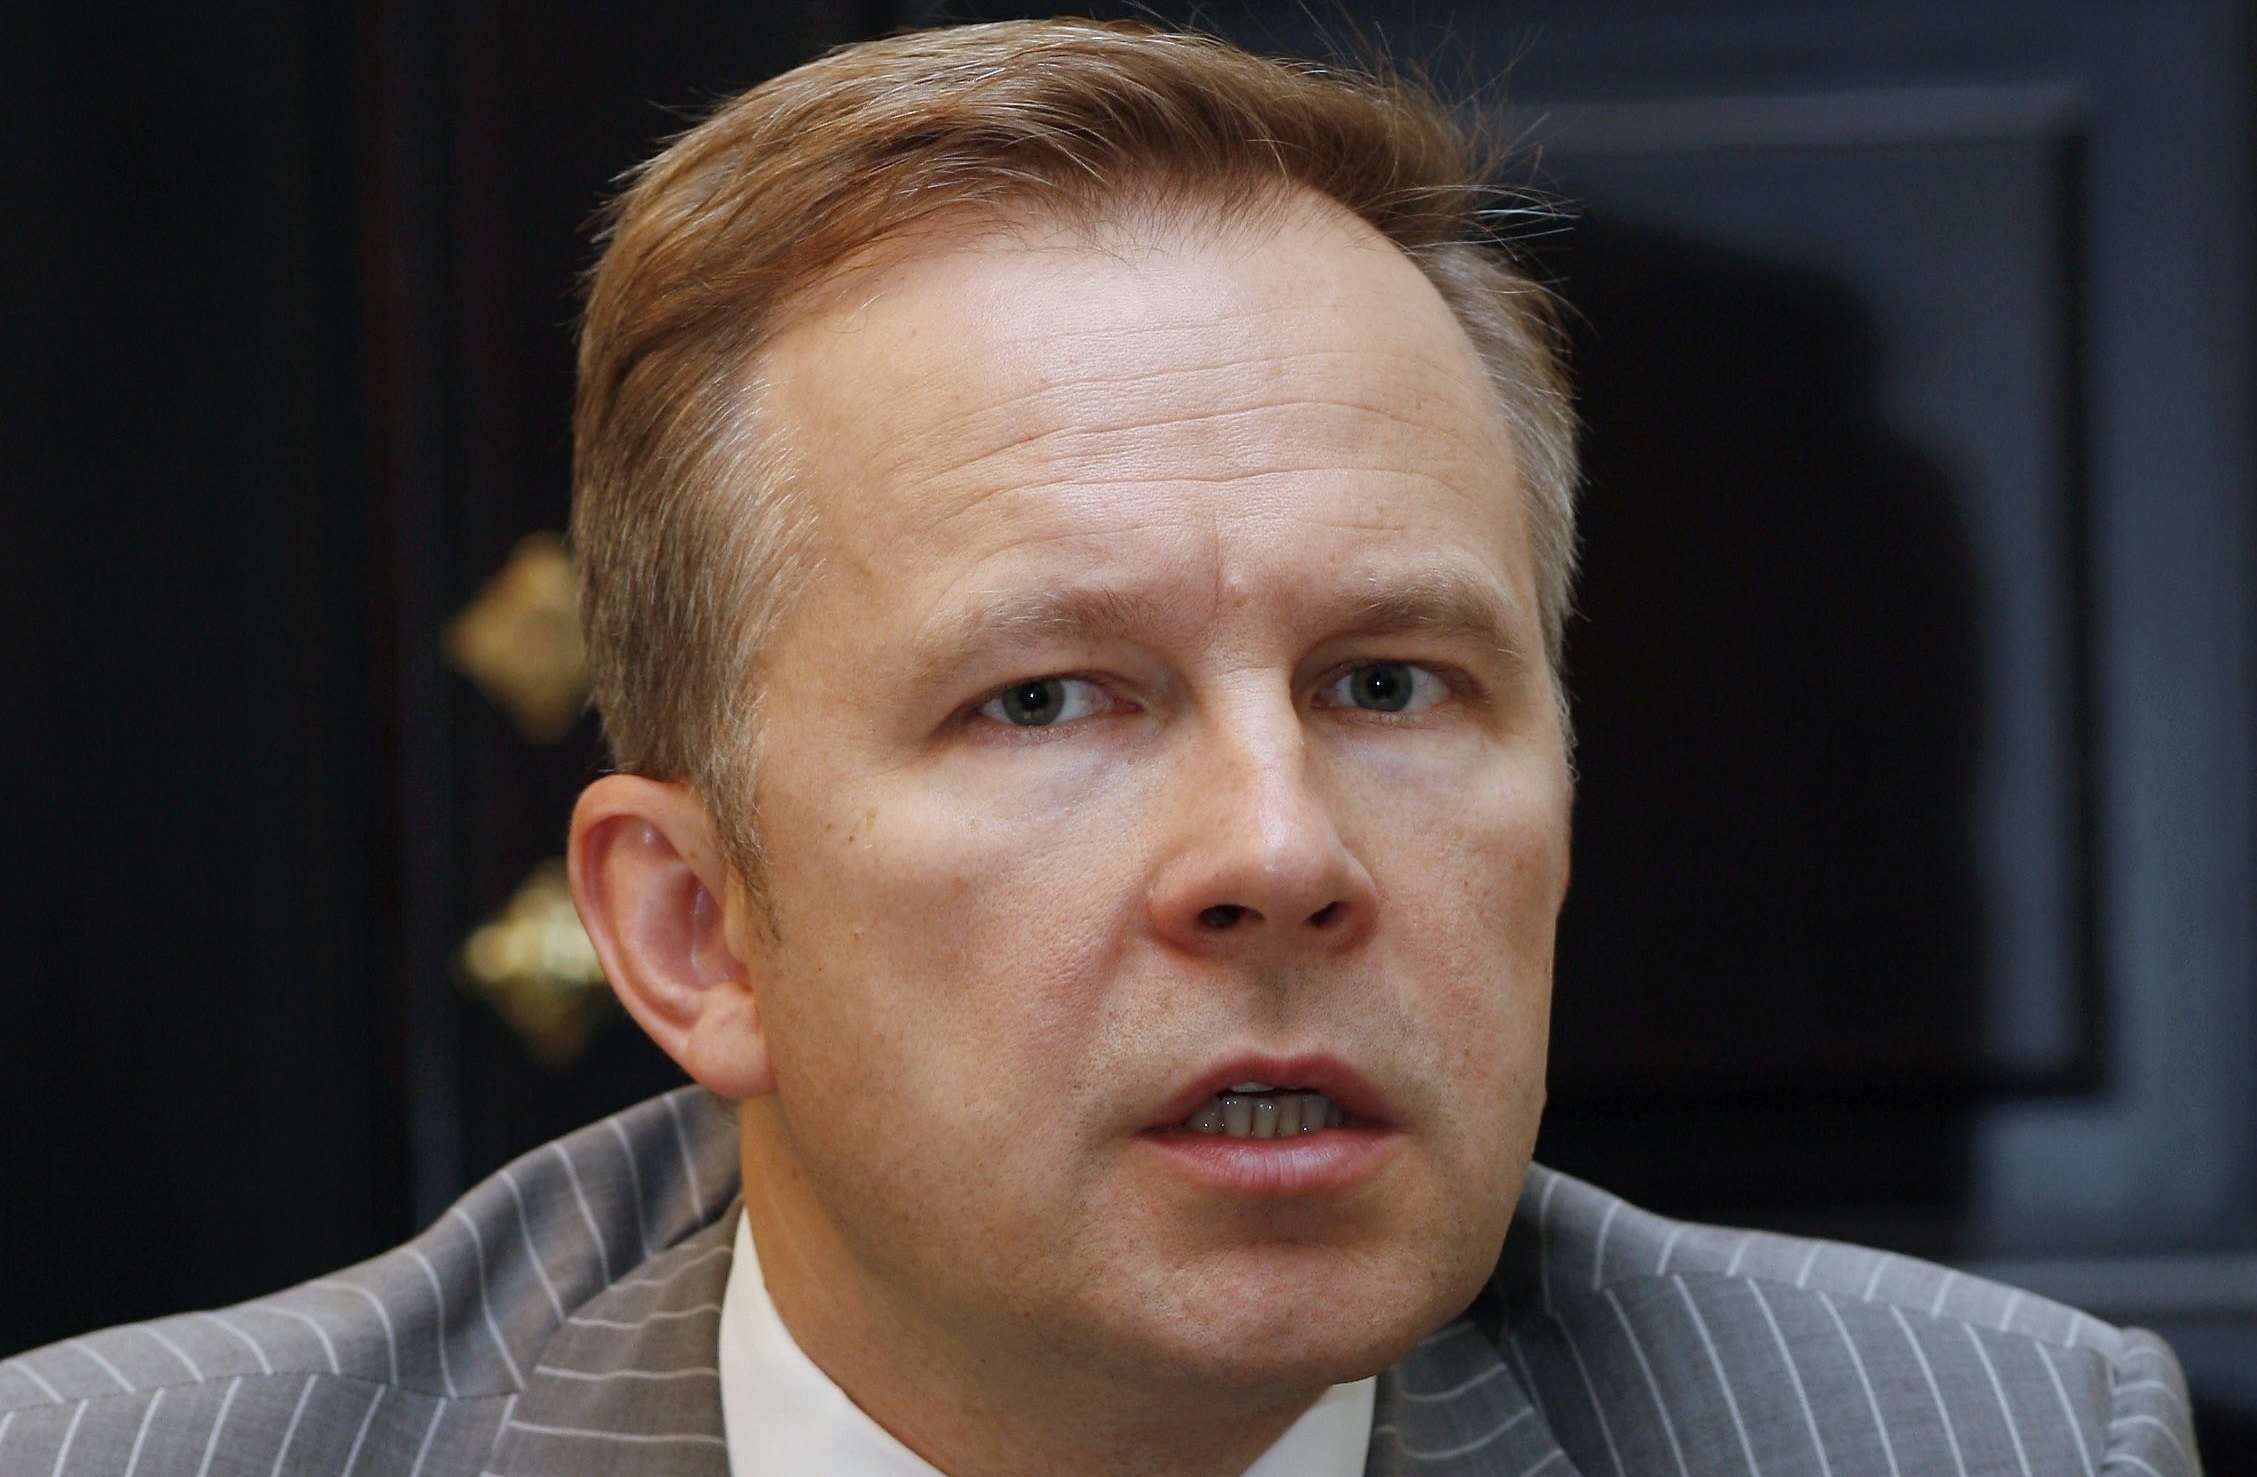 Ilmars Rimsevics, the governor of the Bank of Latvia, has stood firm